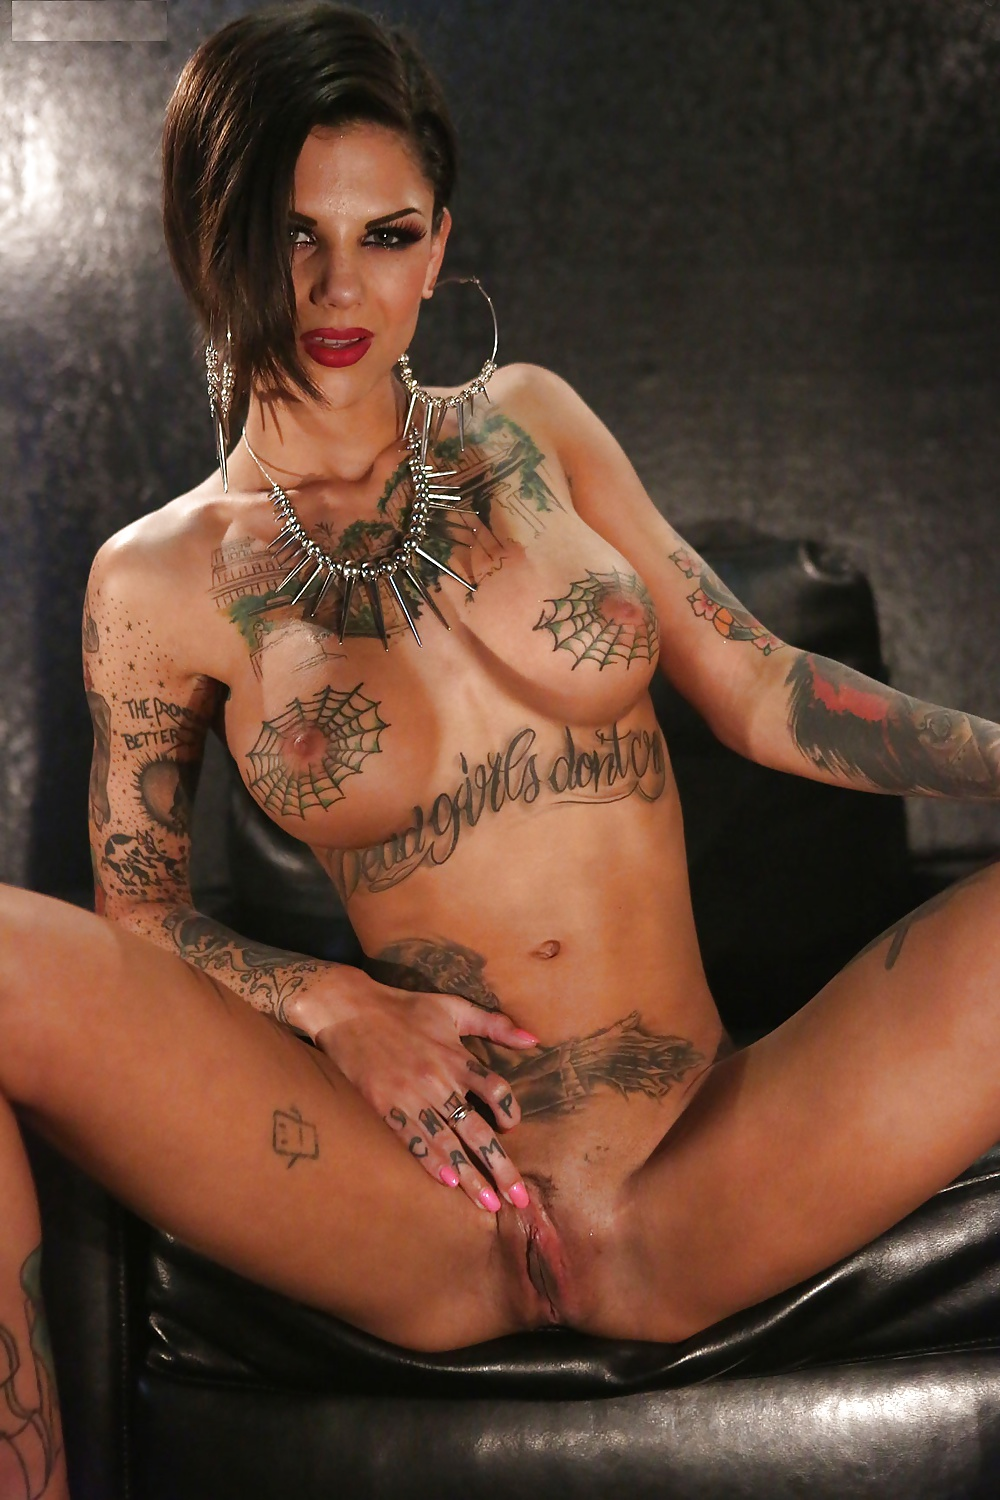 Naked tits bonnie rotten mile high media